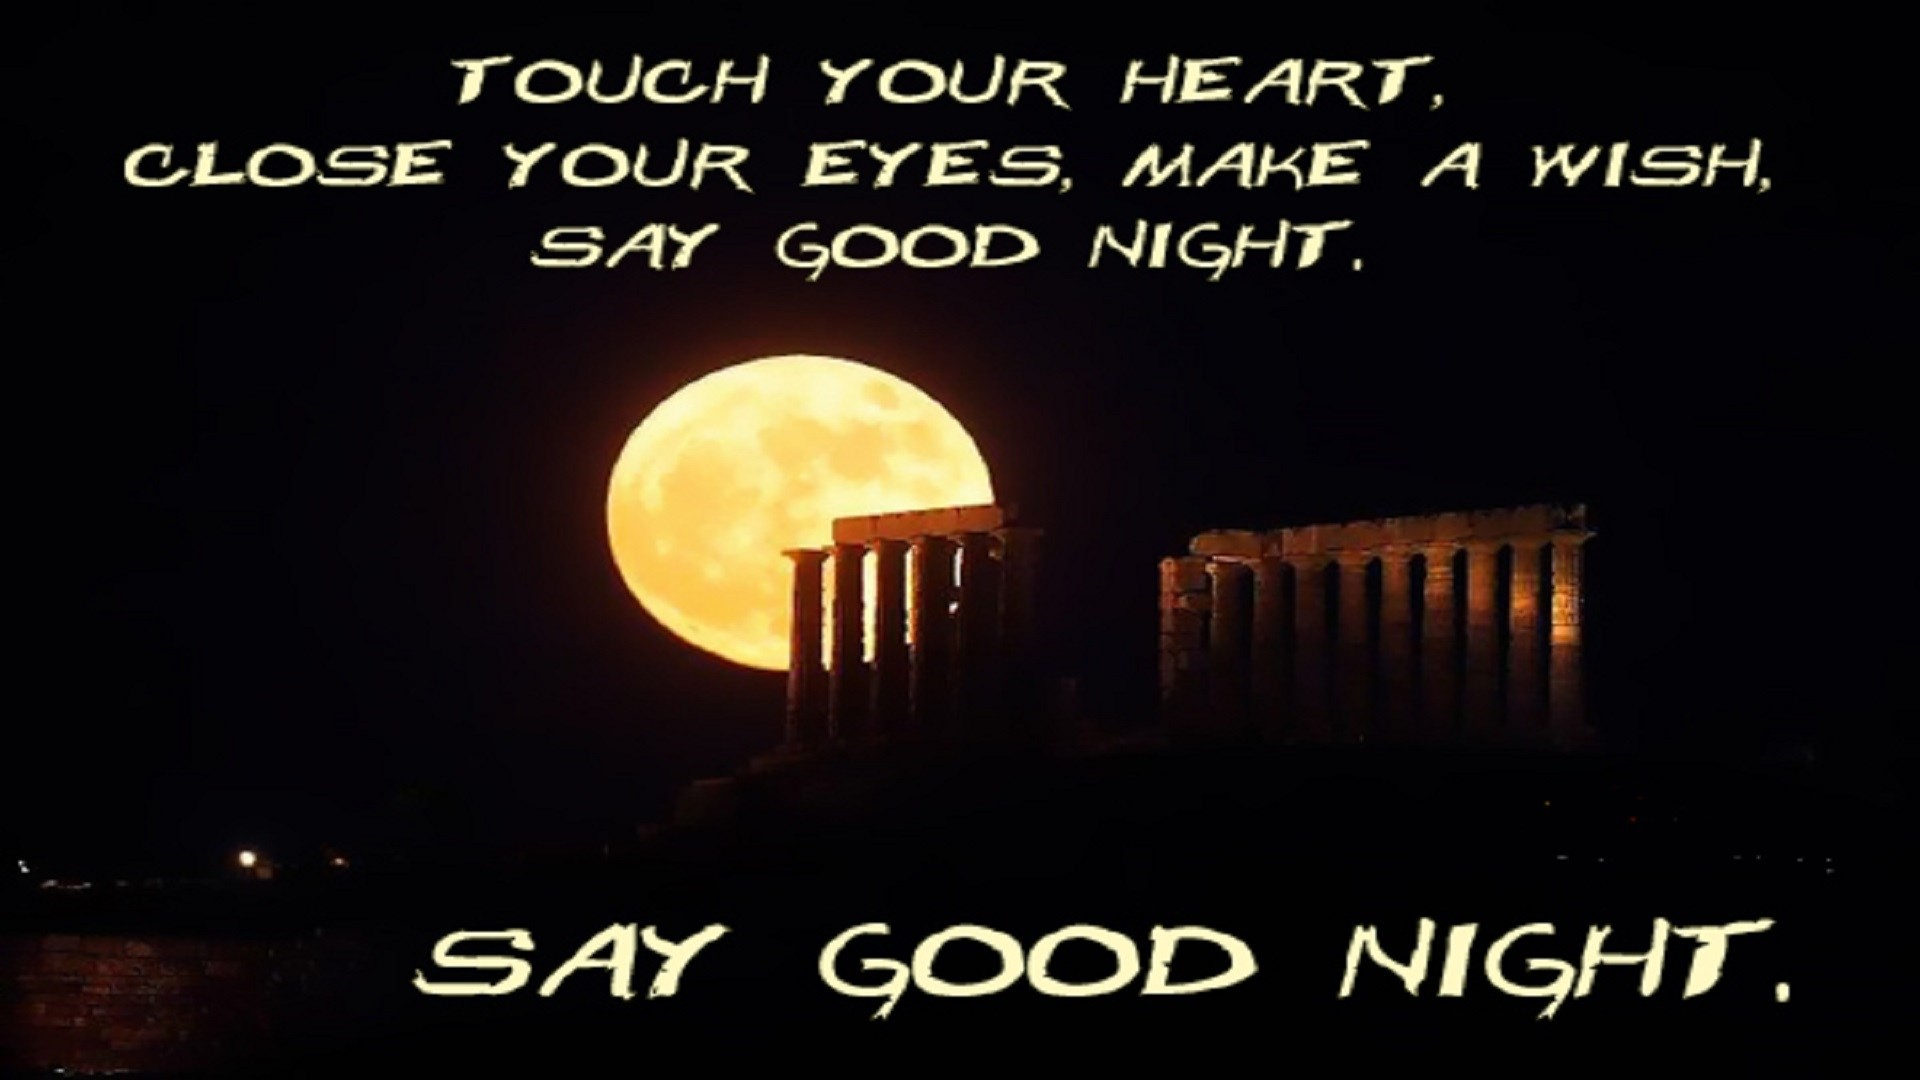 Res: 1920x1080, good night text message greeting hd wallpaper